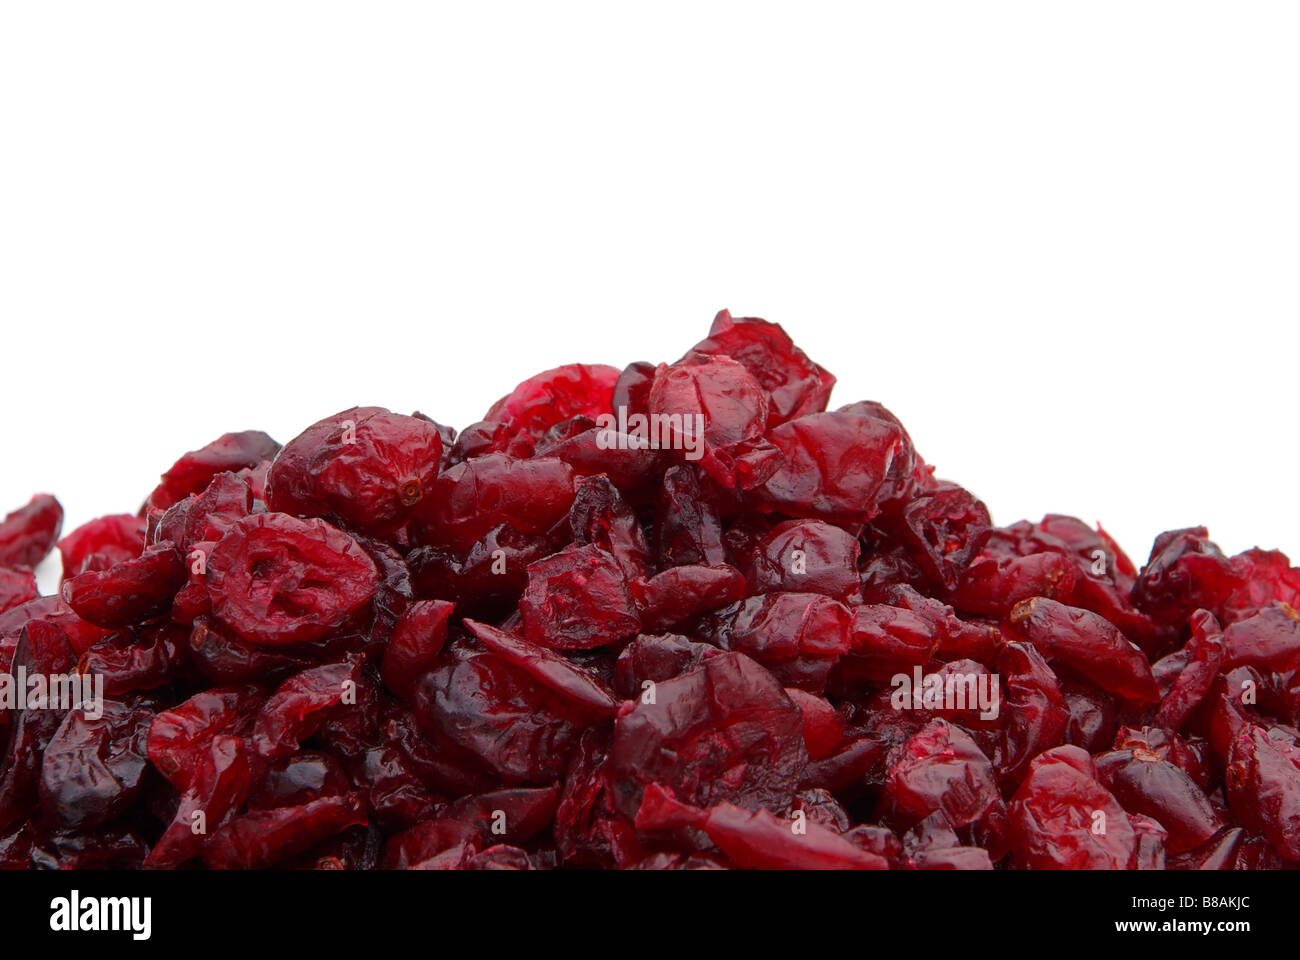 Cranberry 03 - Stock Image